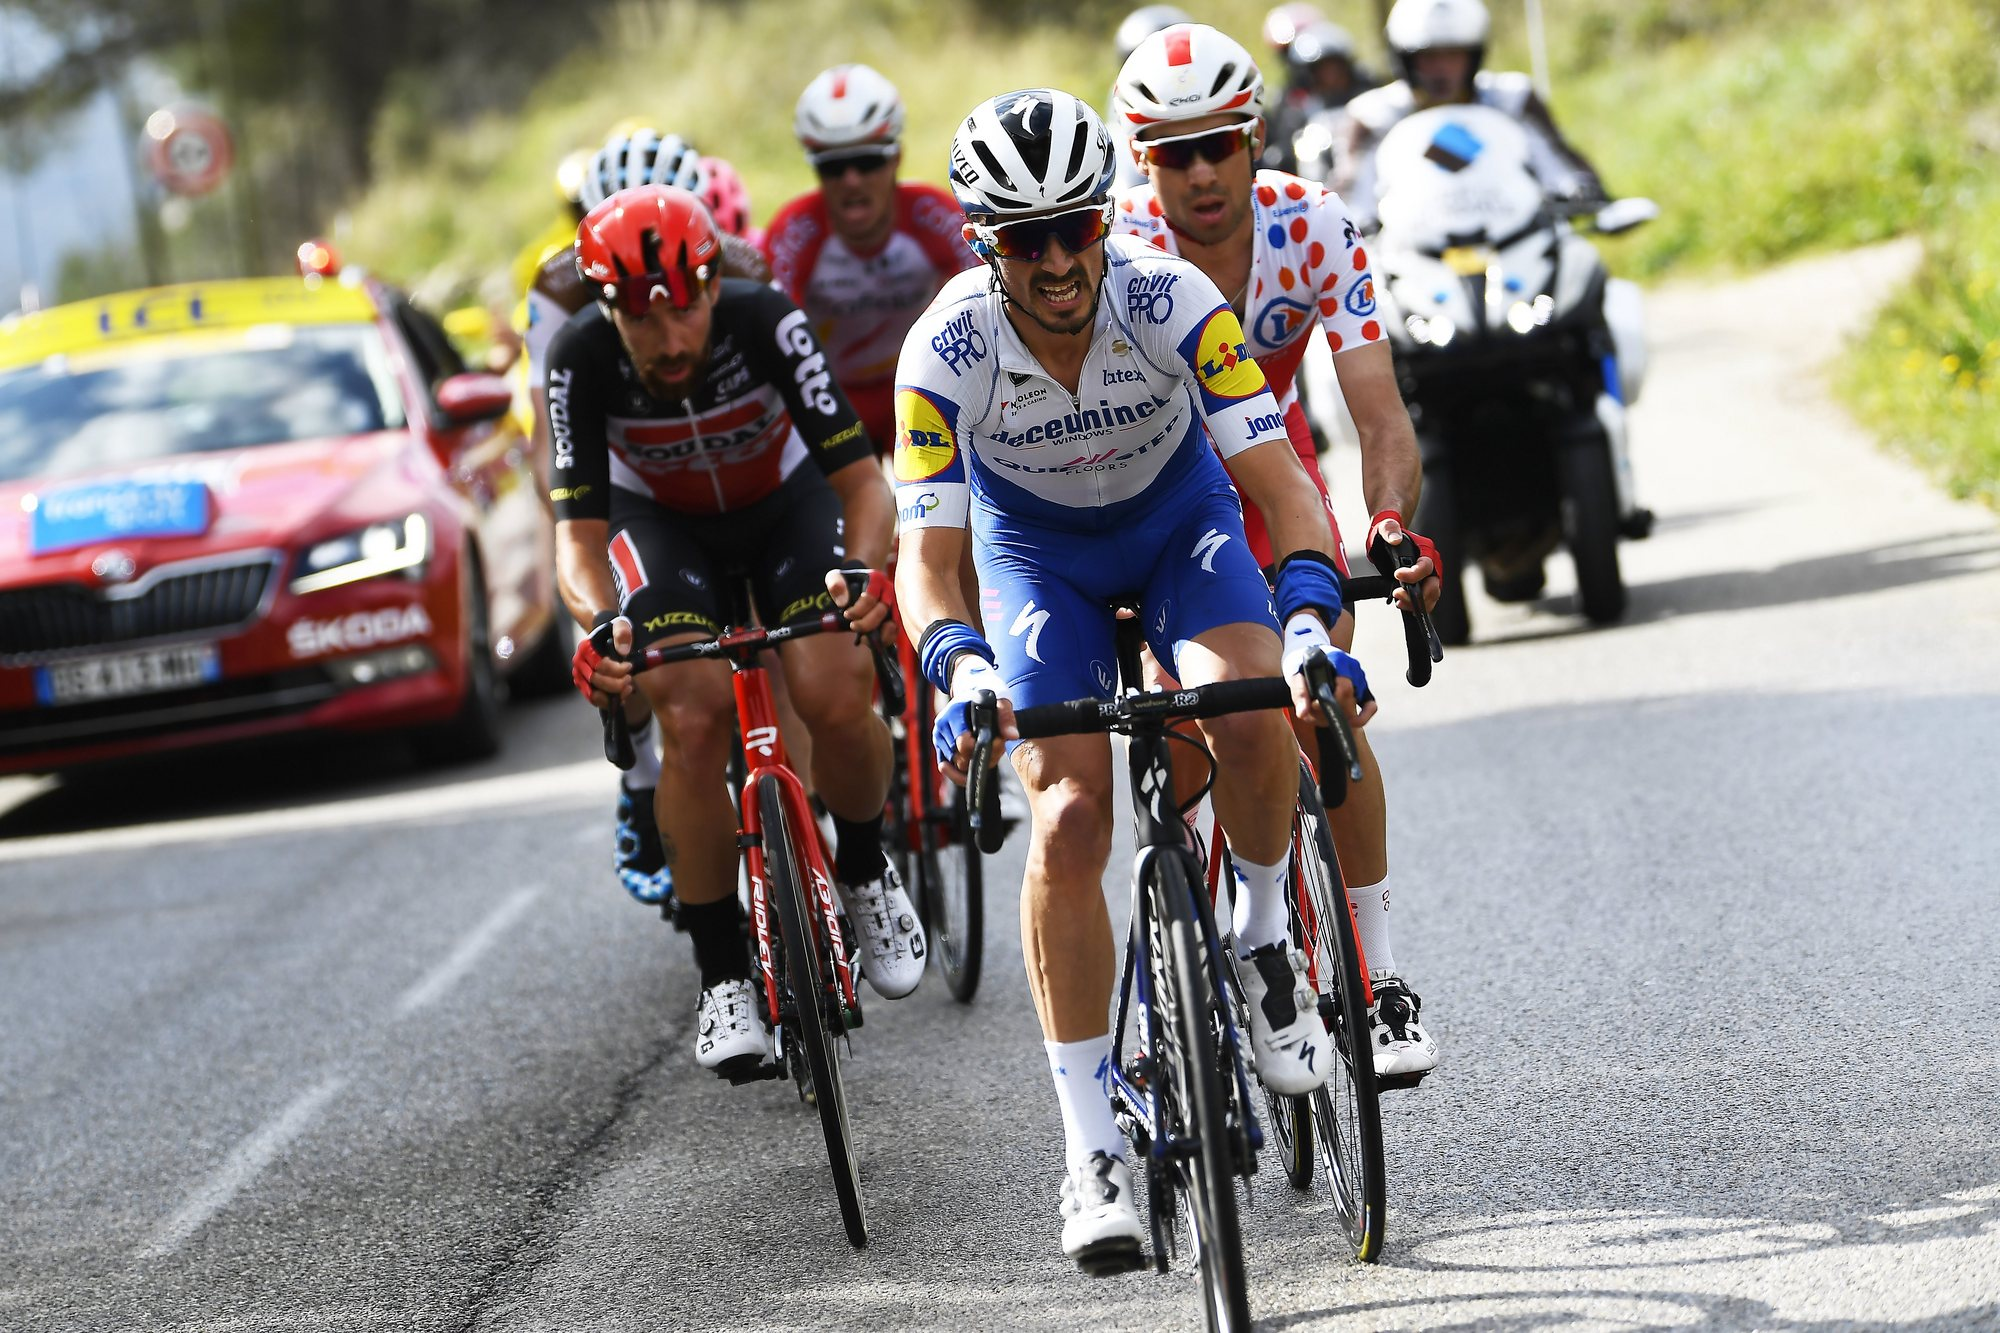 Paris Nice 2020 78th Edition 7th stage Nice Valdeblore La Colmiane 1665 km 14032020 Thomas De Gendt BEL Lotto Soudal Julian Alaphilippe FRA Deceuninck Quick Step photo Nico VereeckenPNBettiniPhoto2020